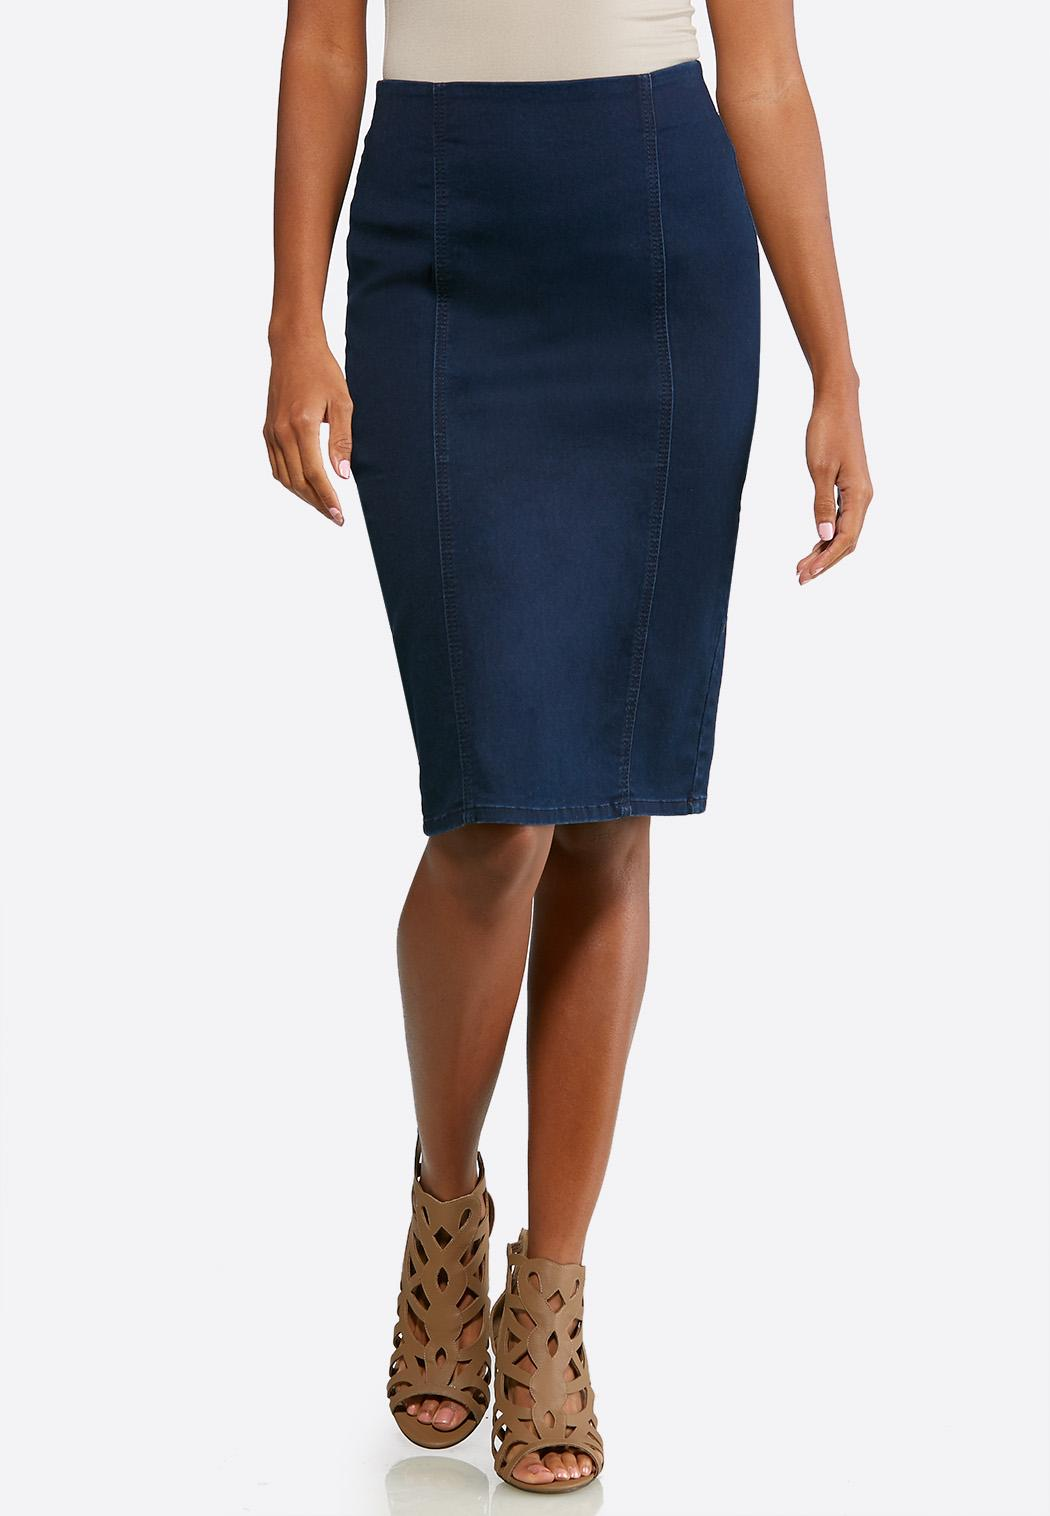 6a914db603 Pull-On Denim Pencil Skirt Skirts Cato Fashions